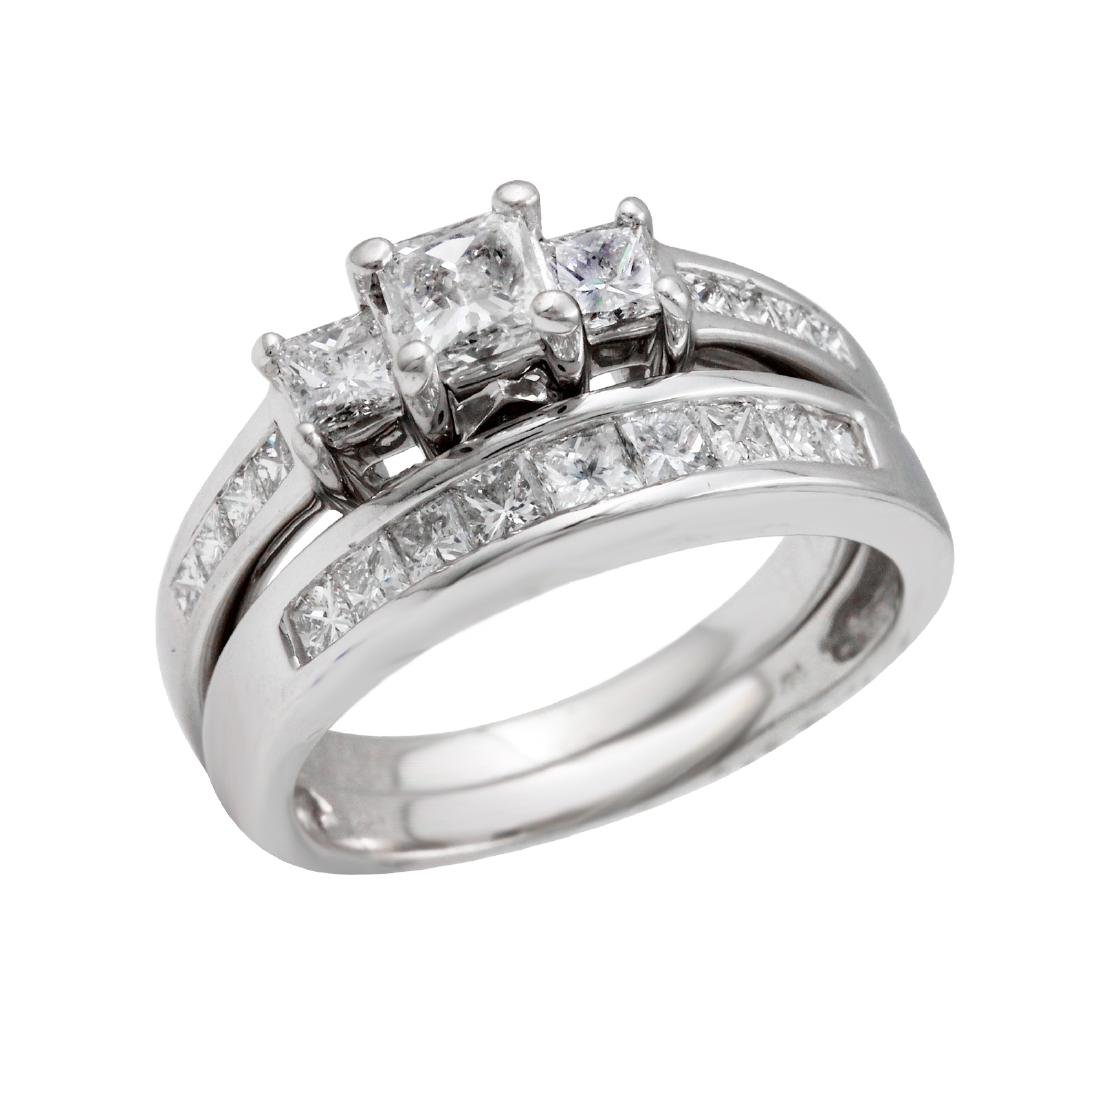 14KT White Gold 1.55ctw Diamond Engagement Ring and